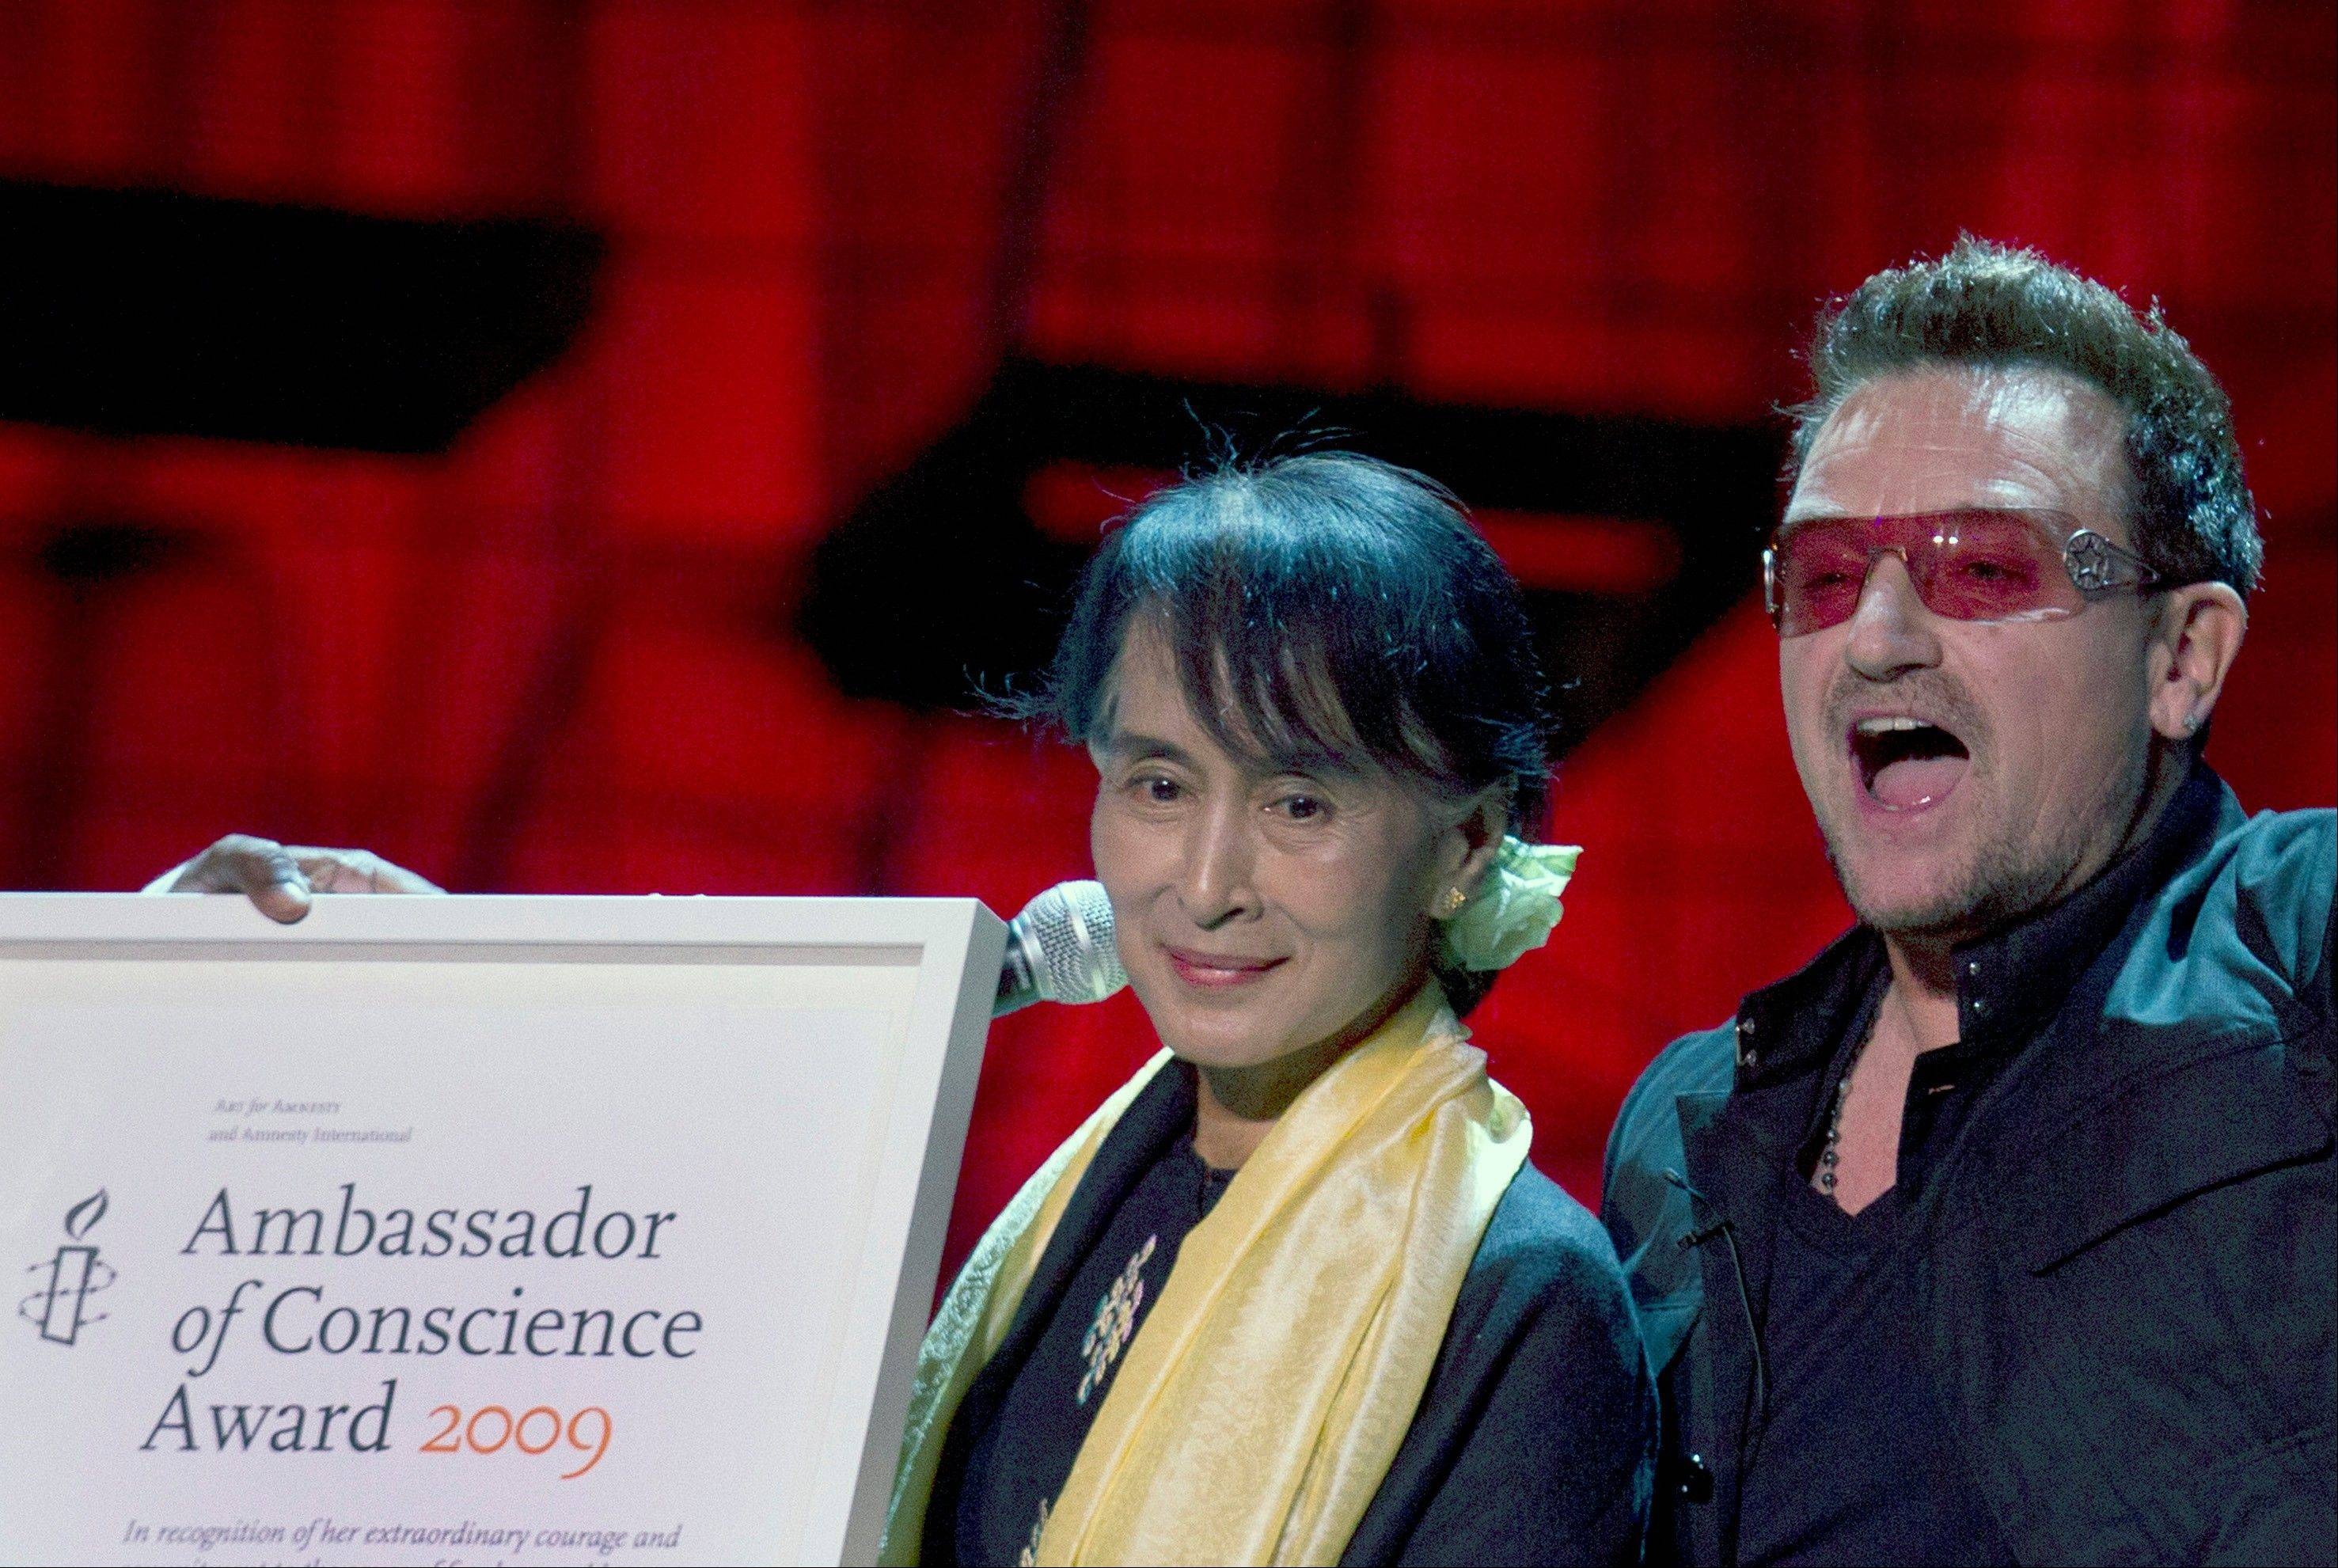 Irish singer Bono hands Myanmar opposition leader Aung San Suu Kyi the Amnesty International's Ambassador of Conscience award in Dublin, Ireland, Monday, June 18, 2012. The award was made in 2009, and this is the first opportunity for Kyi to get the award due to her house arrest in Myanmar.